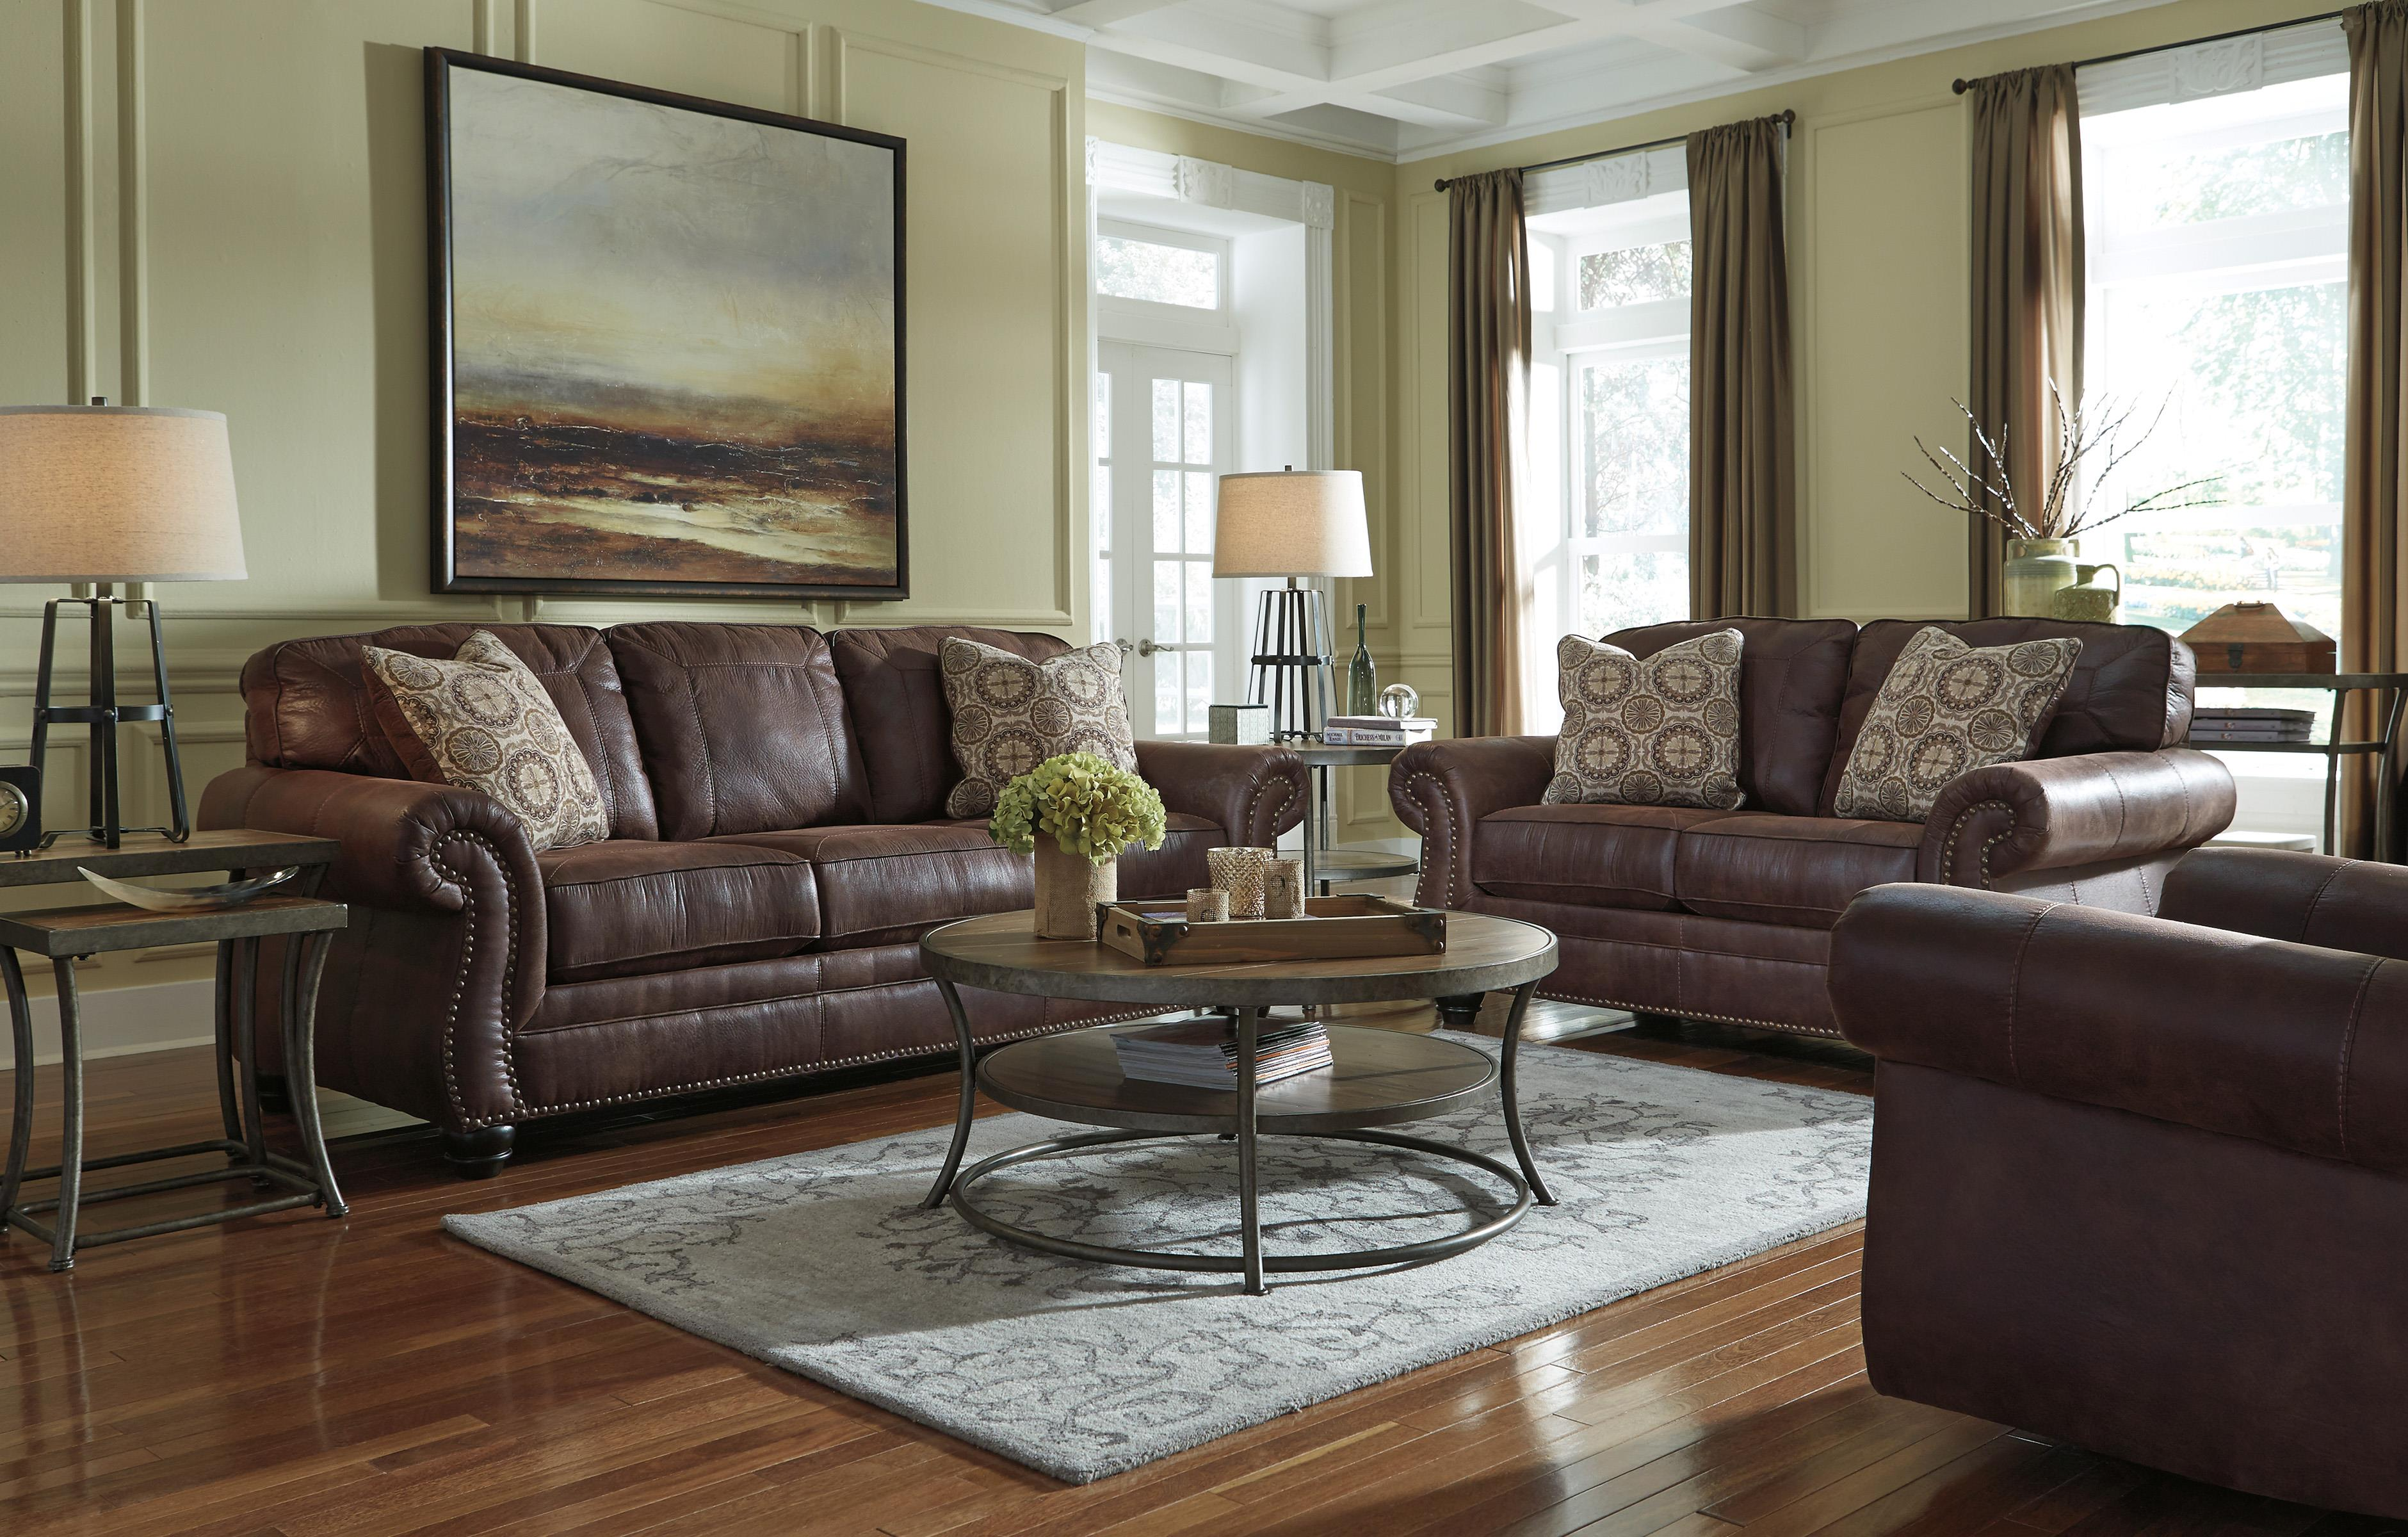 Benchcraft Breville Faux Leather Rocker Recliner with Rolled Arms and Nailhead Trim - Wayside Furniture - Three Way Recliners & Benchcraft Breville Faux Leather Rocker Recliner with Rolled Arms ... islam-shia.org